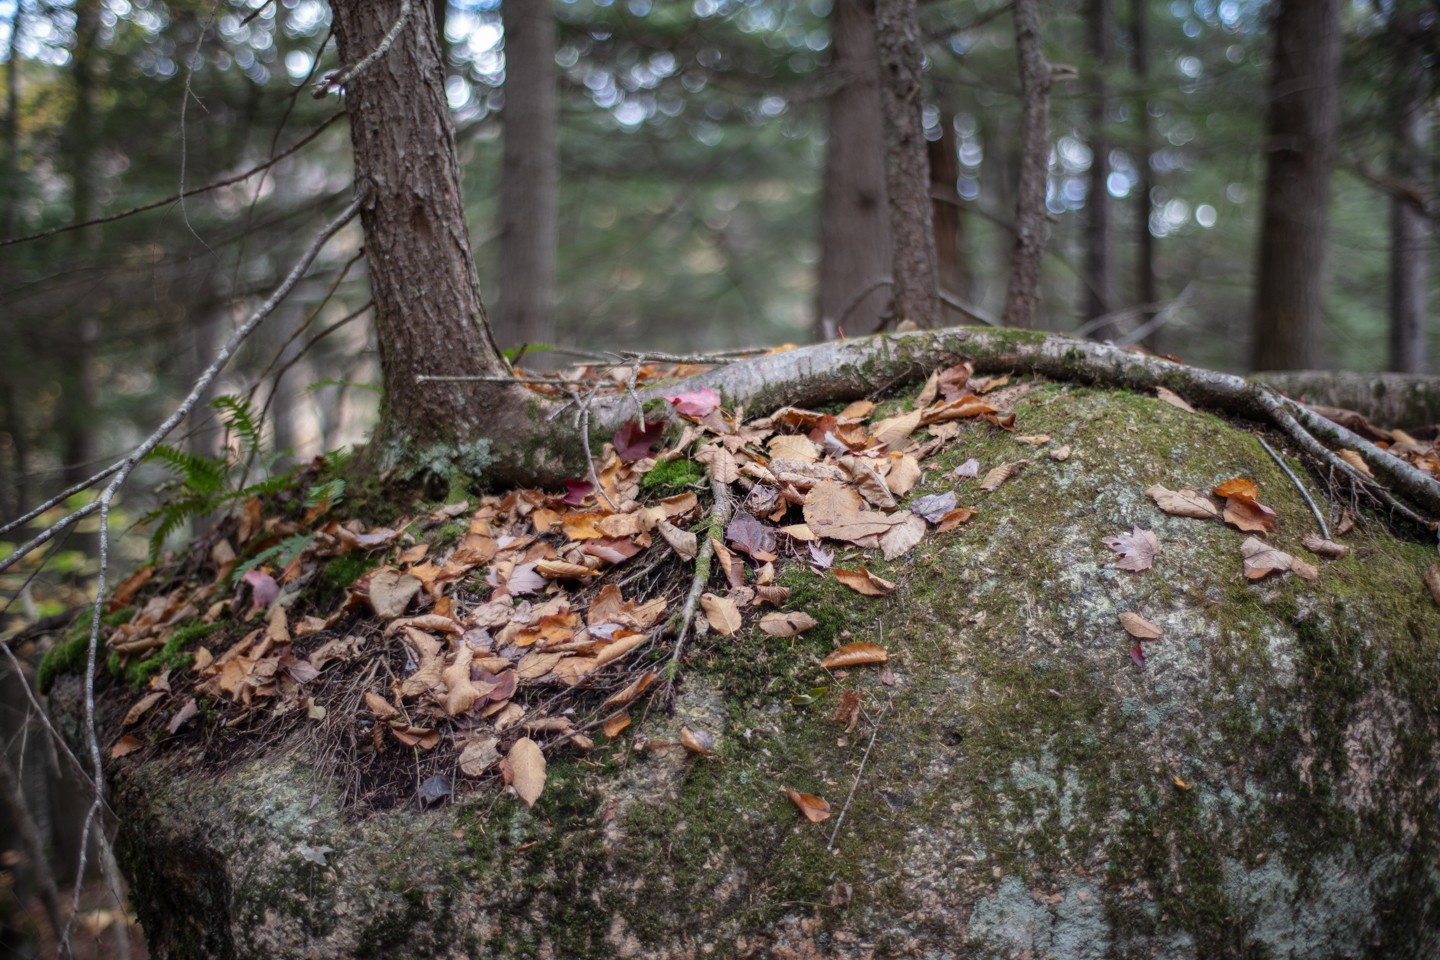 Risher_Wondrous (1 of 7) - This is a landscape orientated digital photograph taken during the day, in the forest. In the foreground of the photo sits a large boulder. On top of the boulder, moss and last season's leaves are scattered over the surface. On